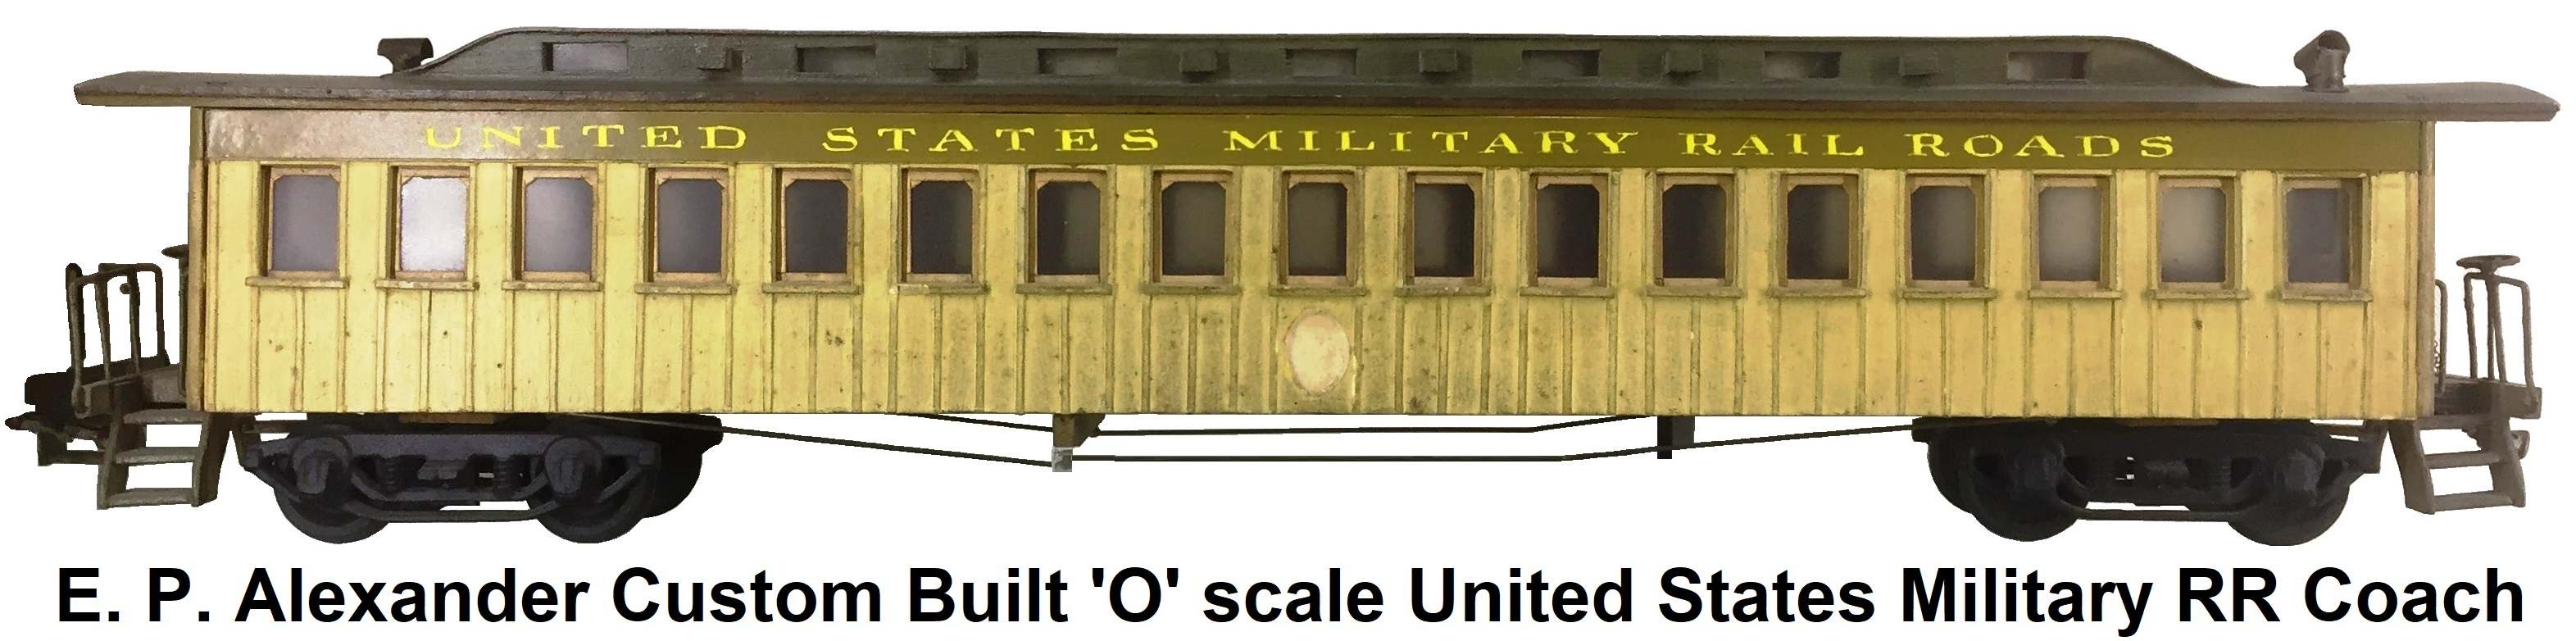 O GAUGE LMS COACH LARGE SHELL ROOF VENTS